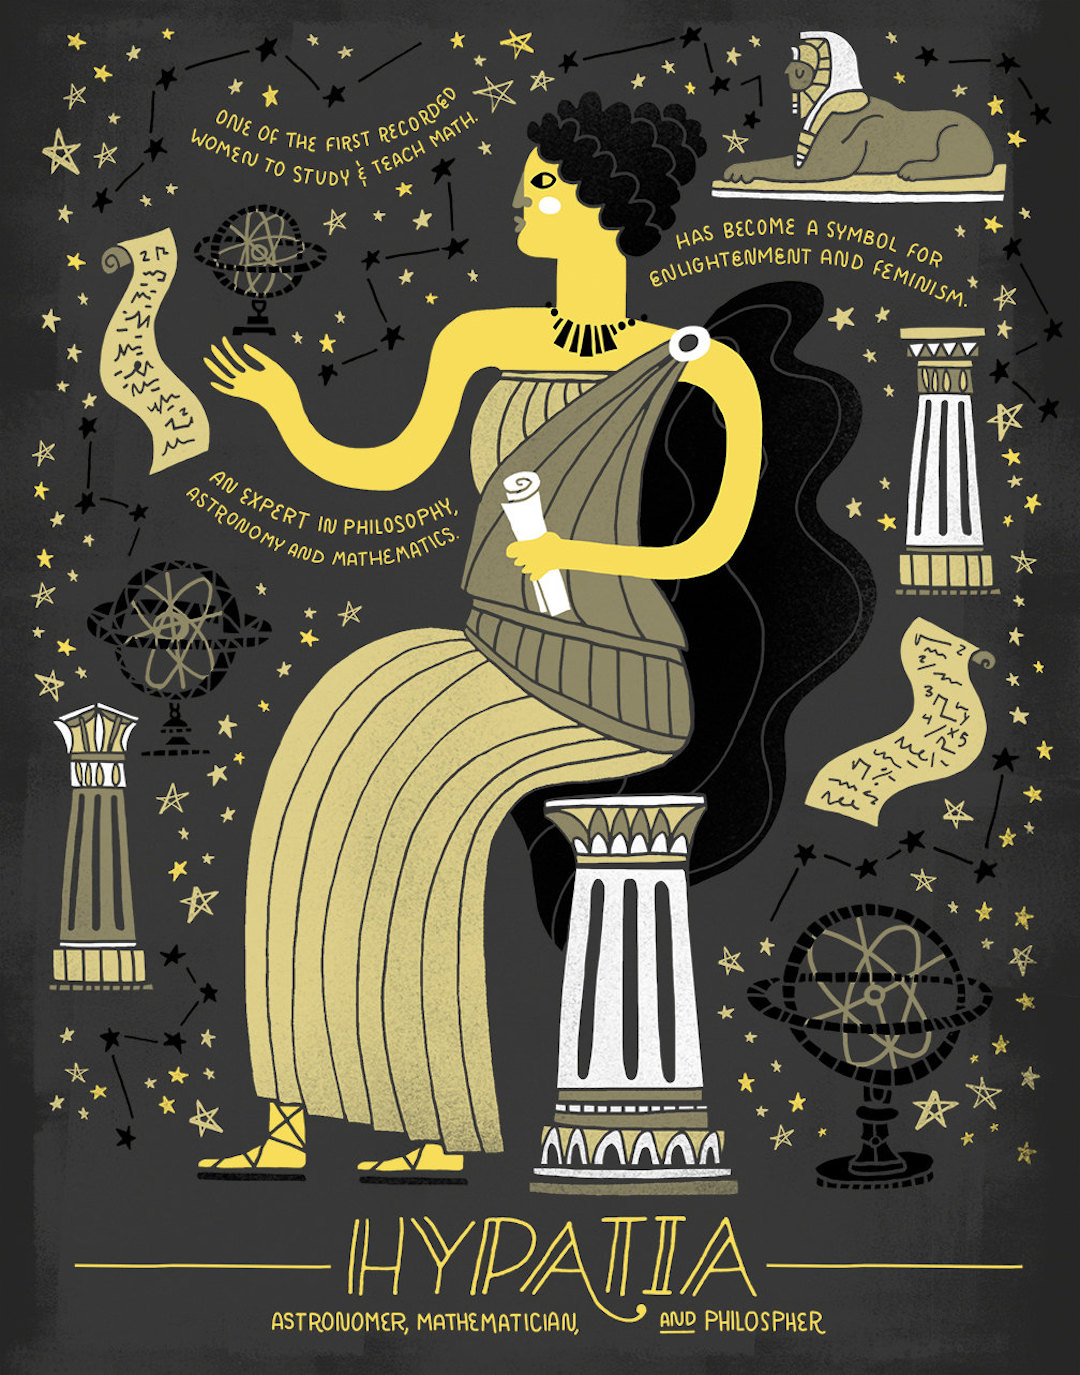 Rachel Ignotofsky women in science